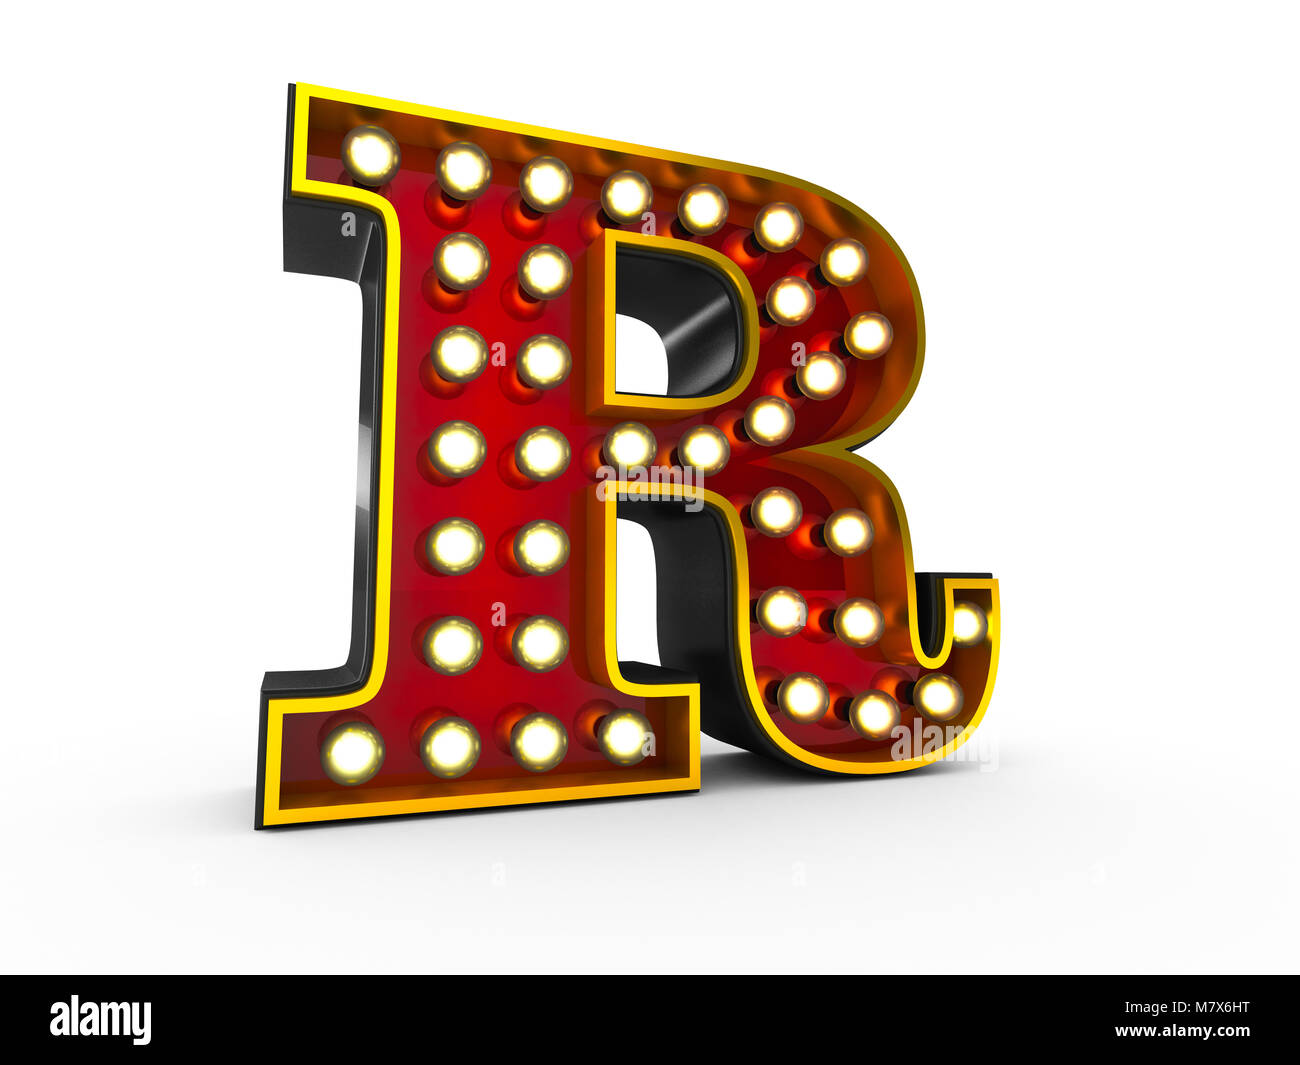 High quality 3D illustration of the letter R in Broadway style with light bulbs illuminating it over white background - Stock Image